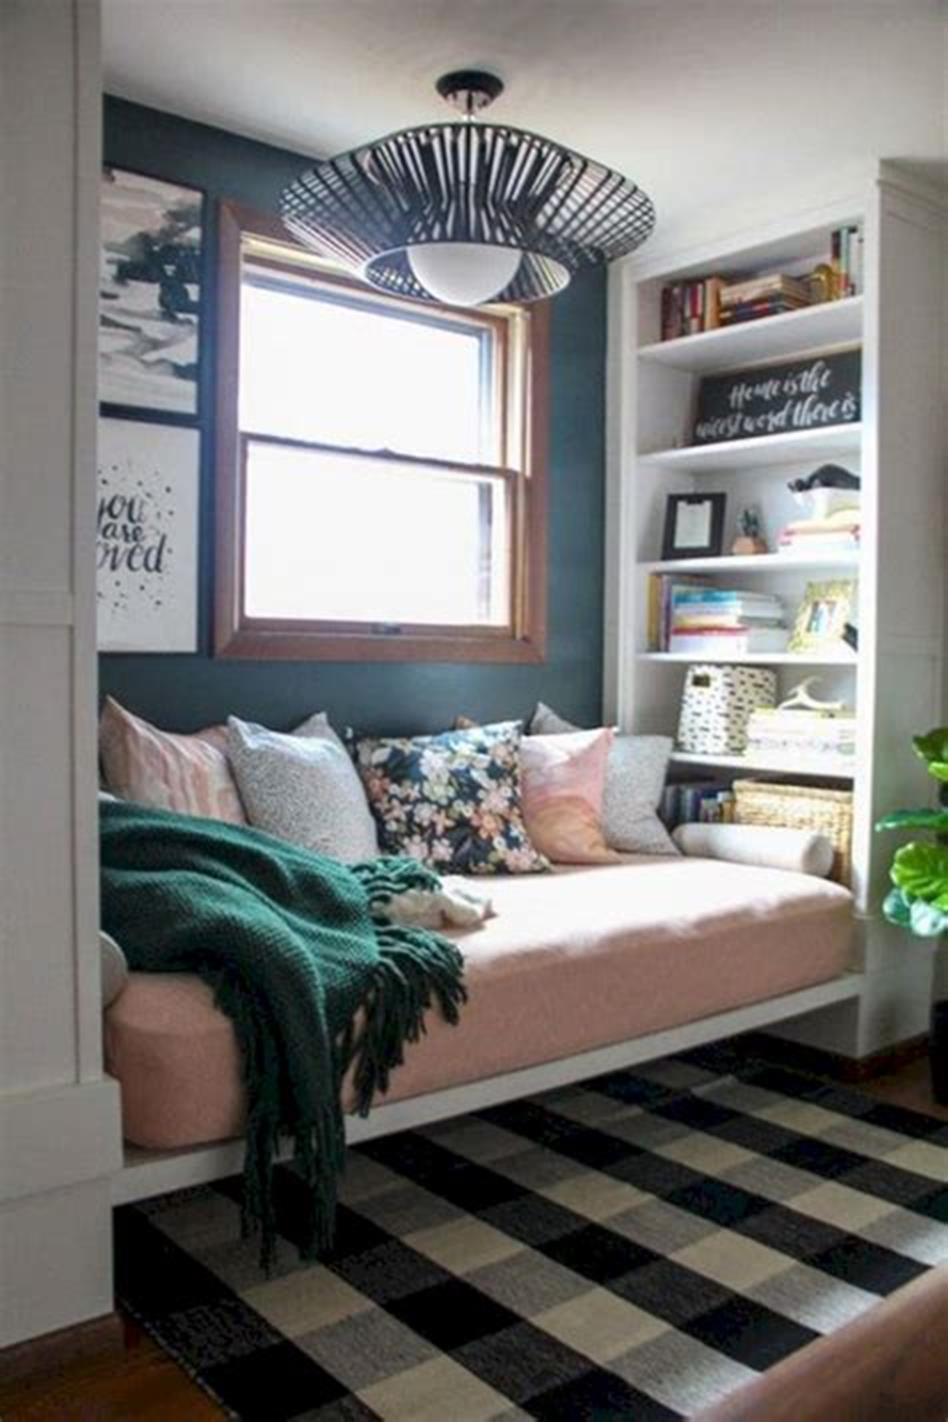 50 Best Small Space Office Decorating Ideas On a Budget 2019 46